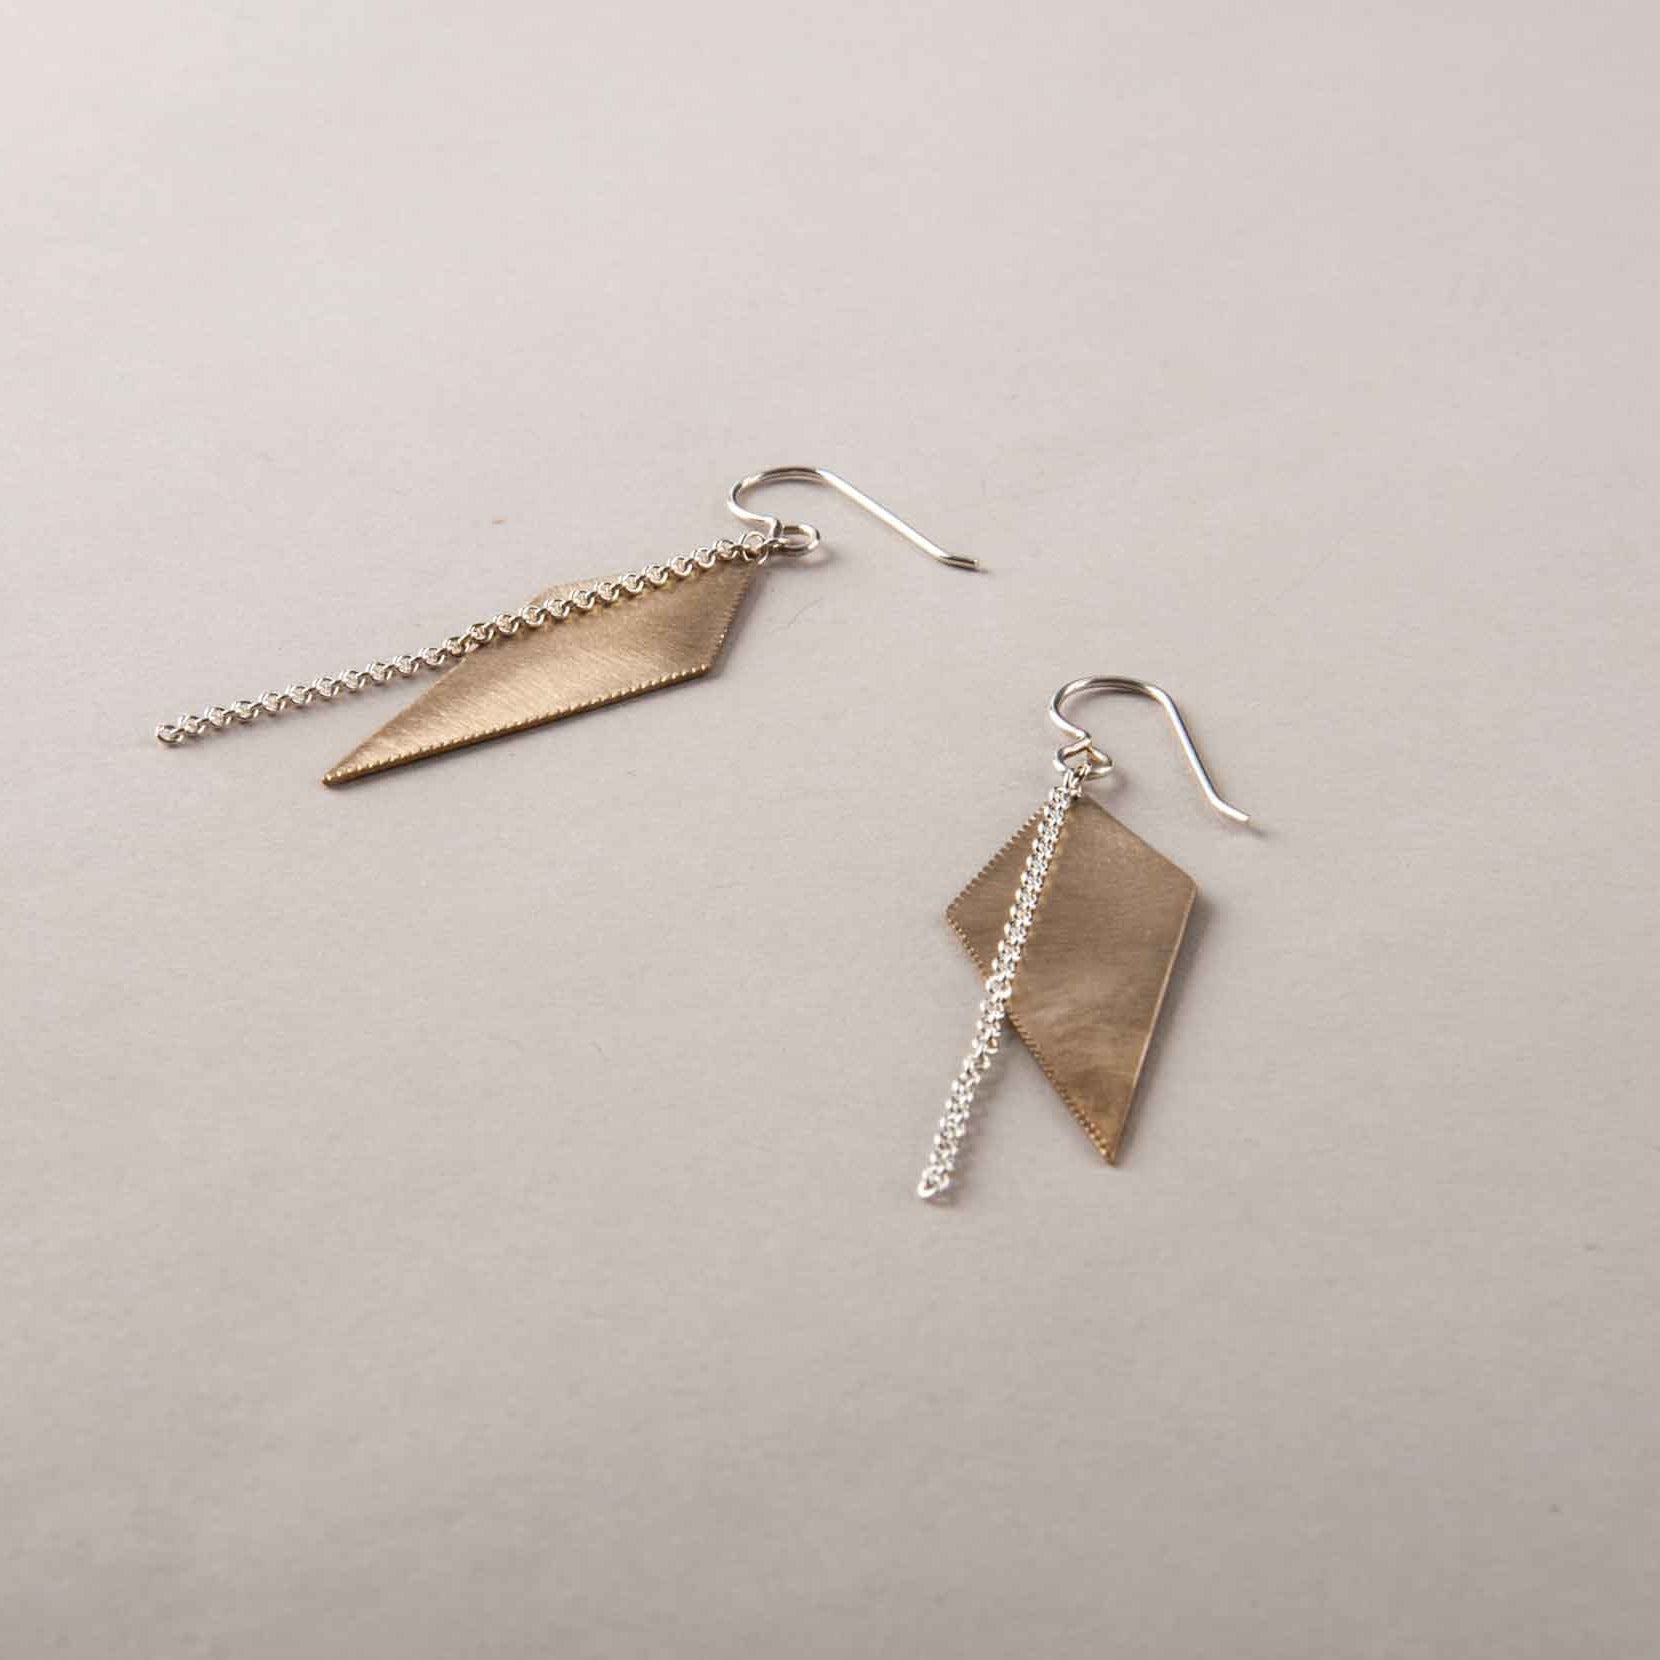 GOLD PLATED SPIKE EARRINGS WITH SILVER CHAIN